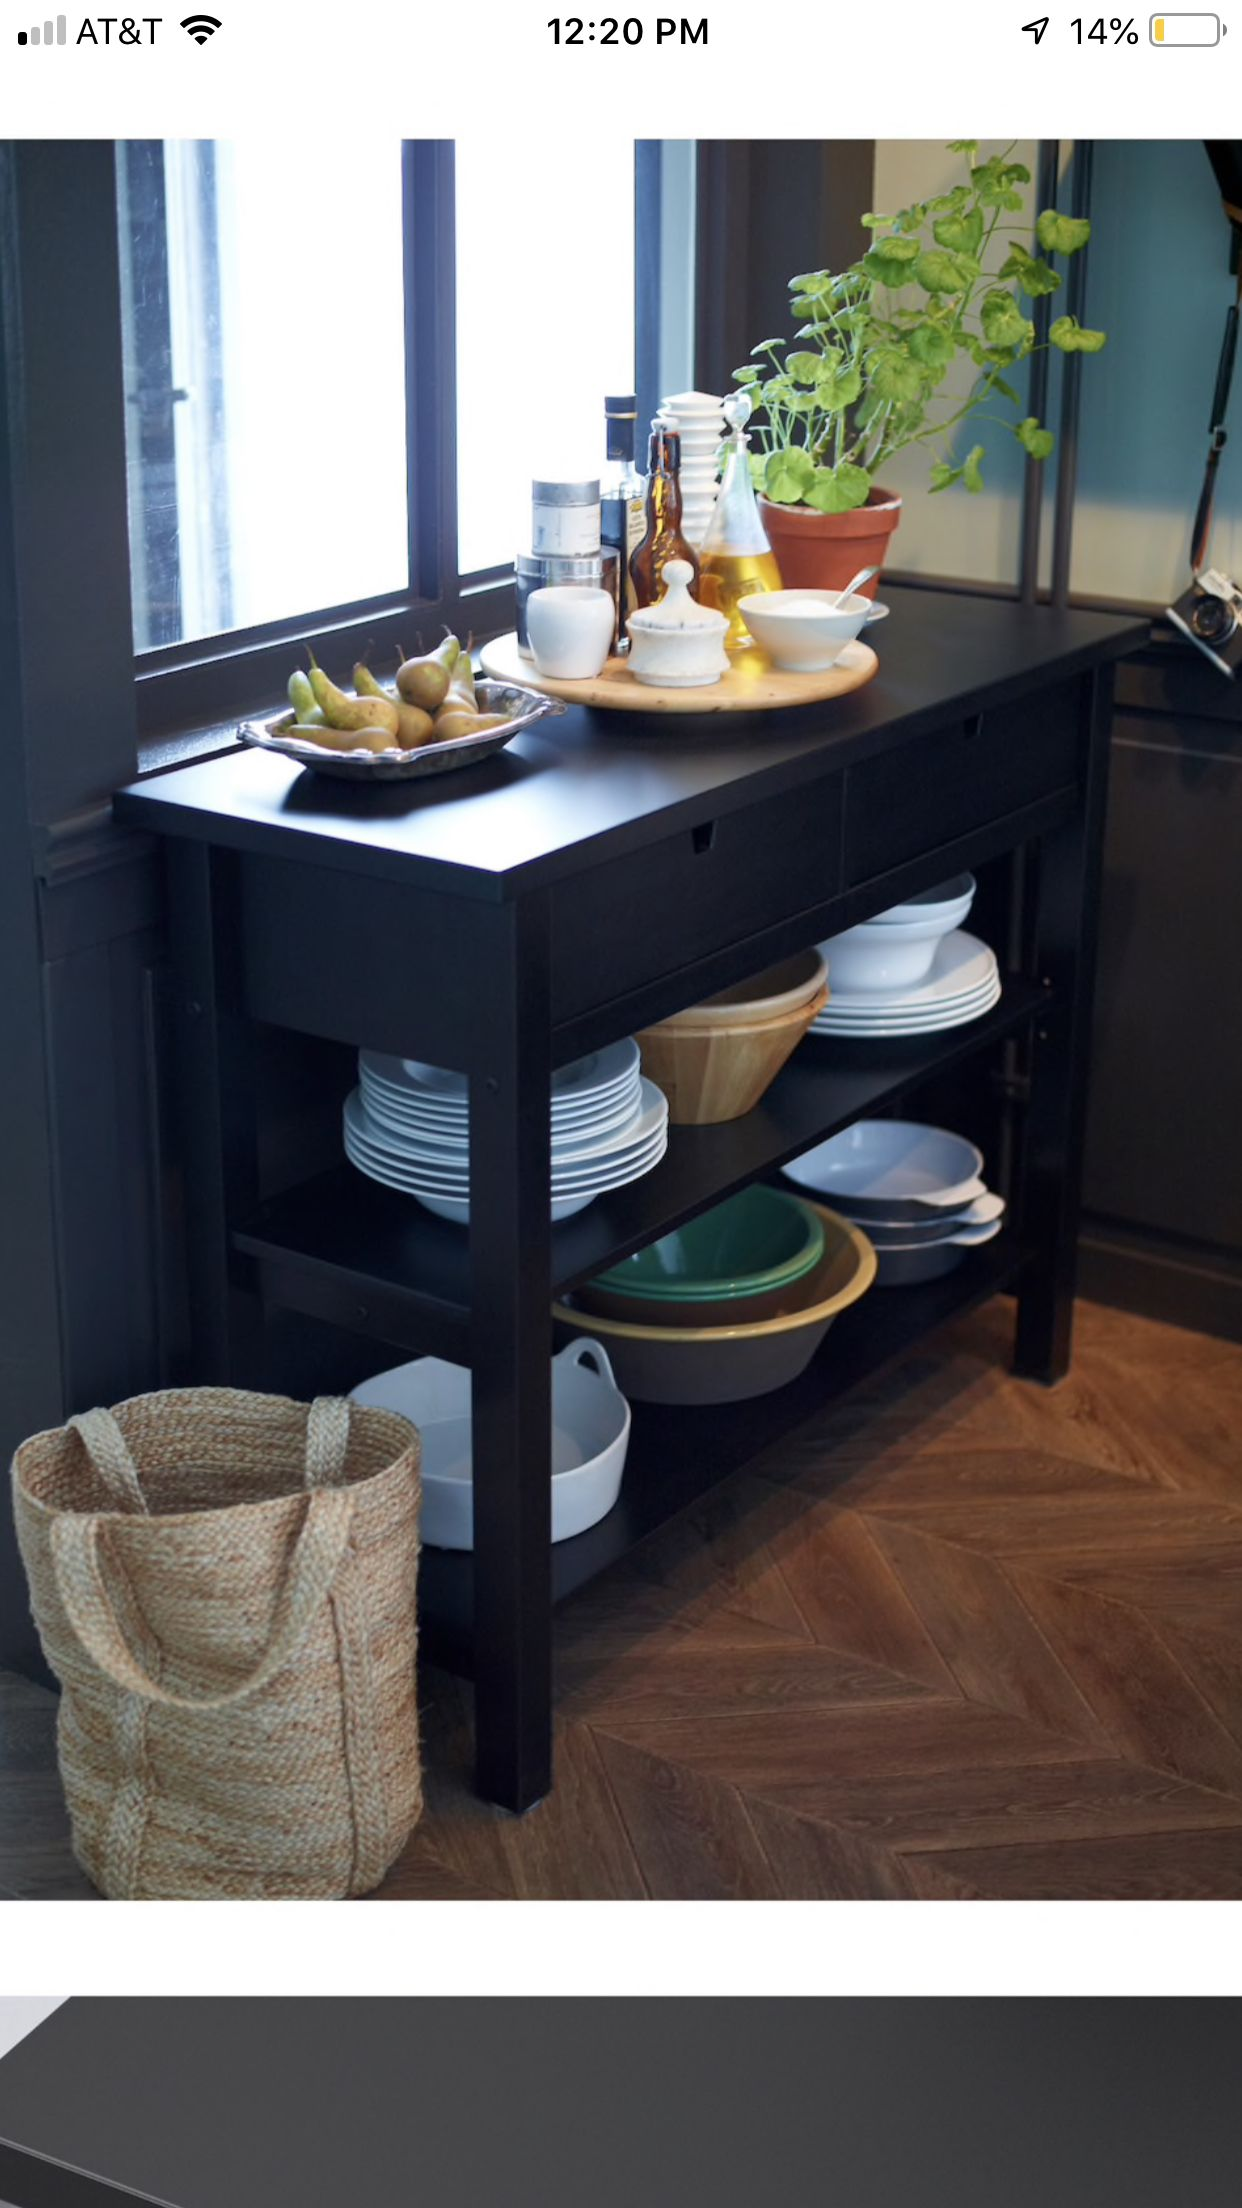 IKEA norden side table (With images) Kitchen decor